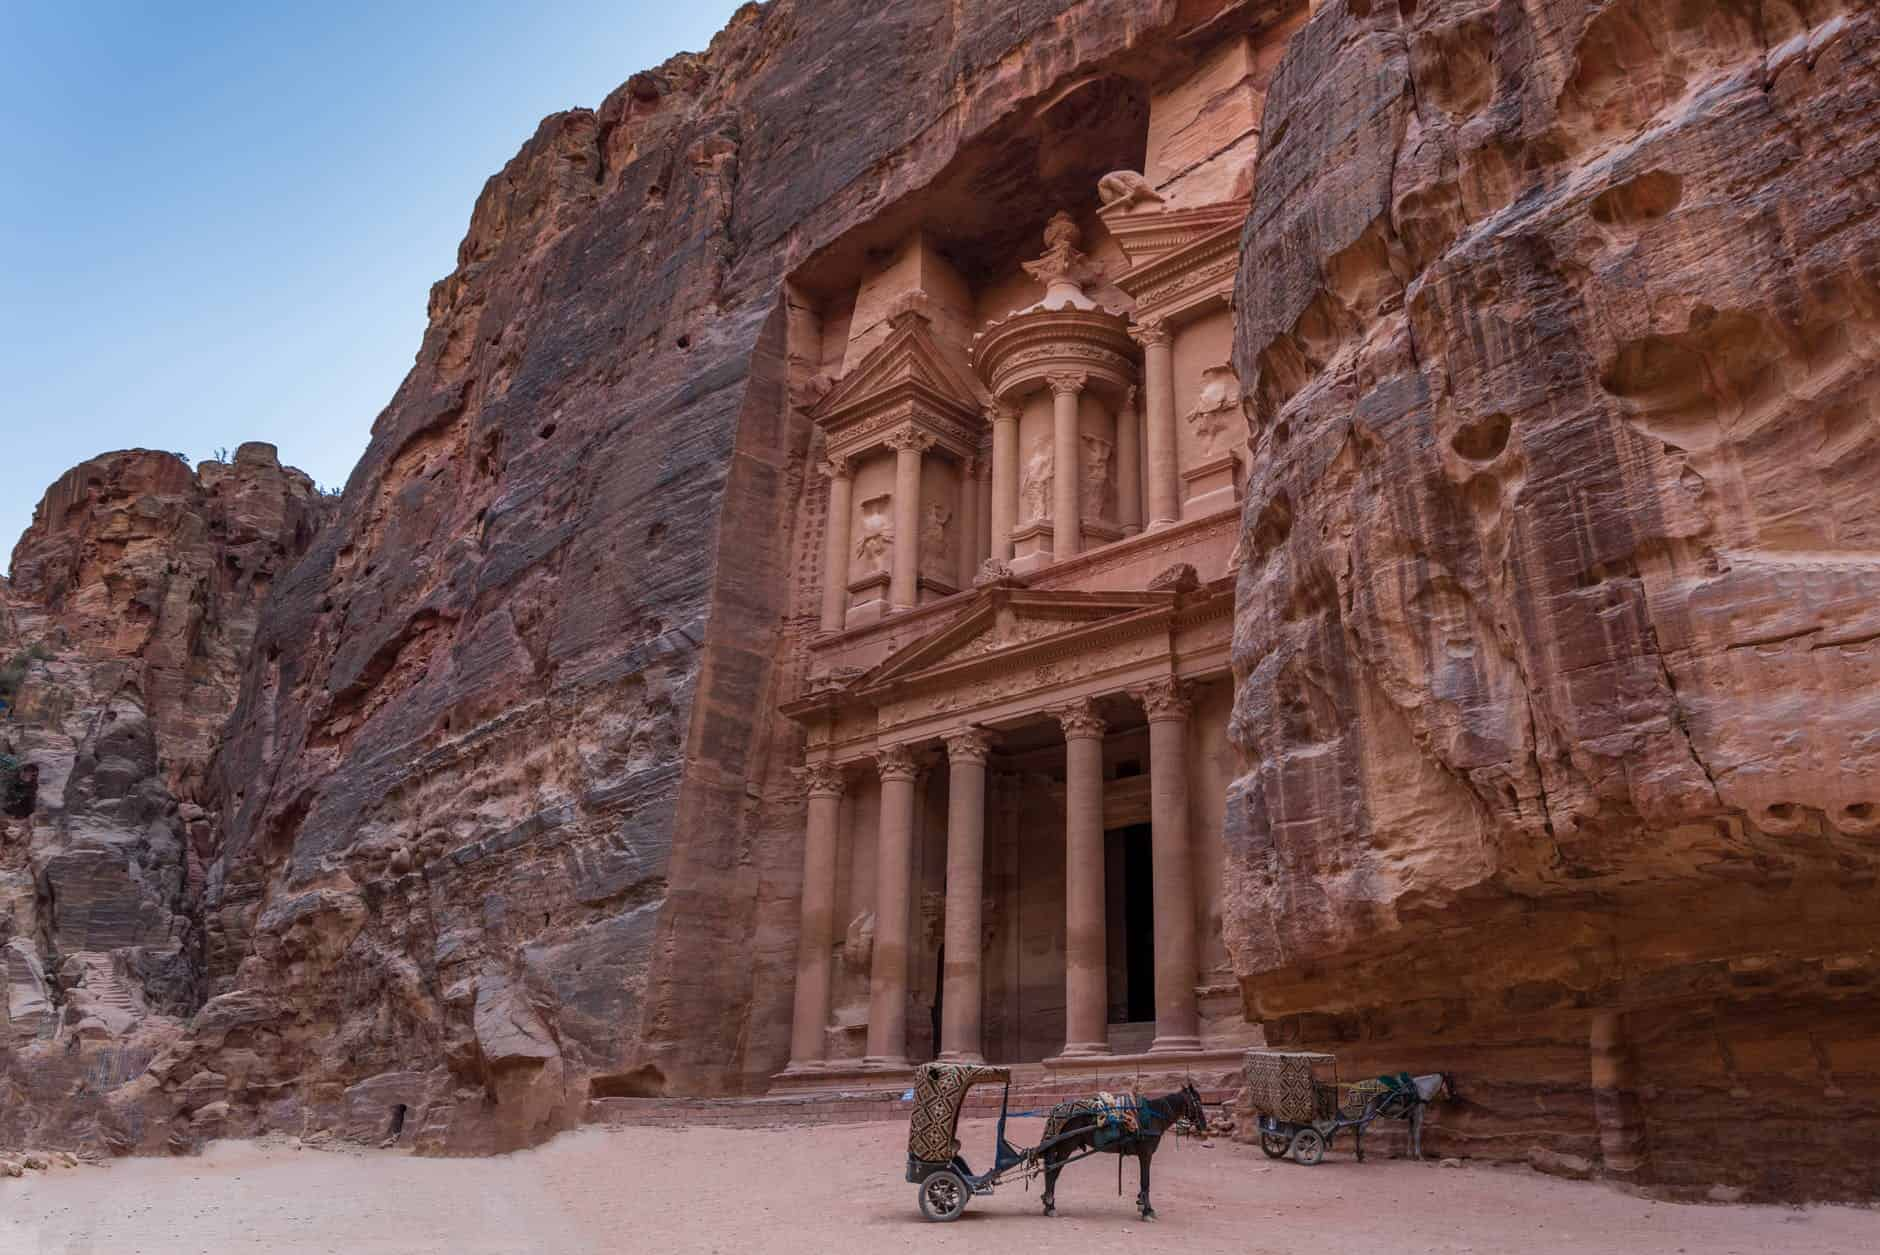 Uncover The Lost City of Petra With These Helpful Sources